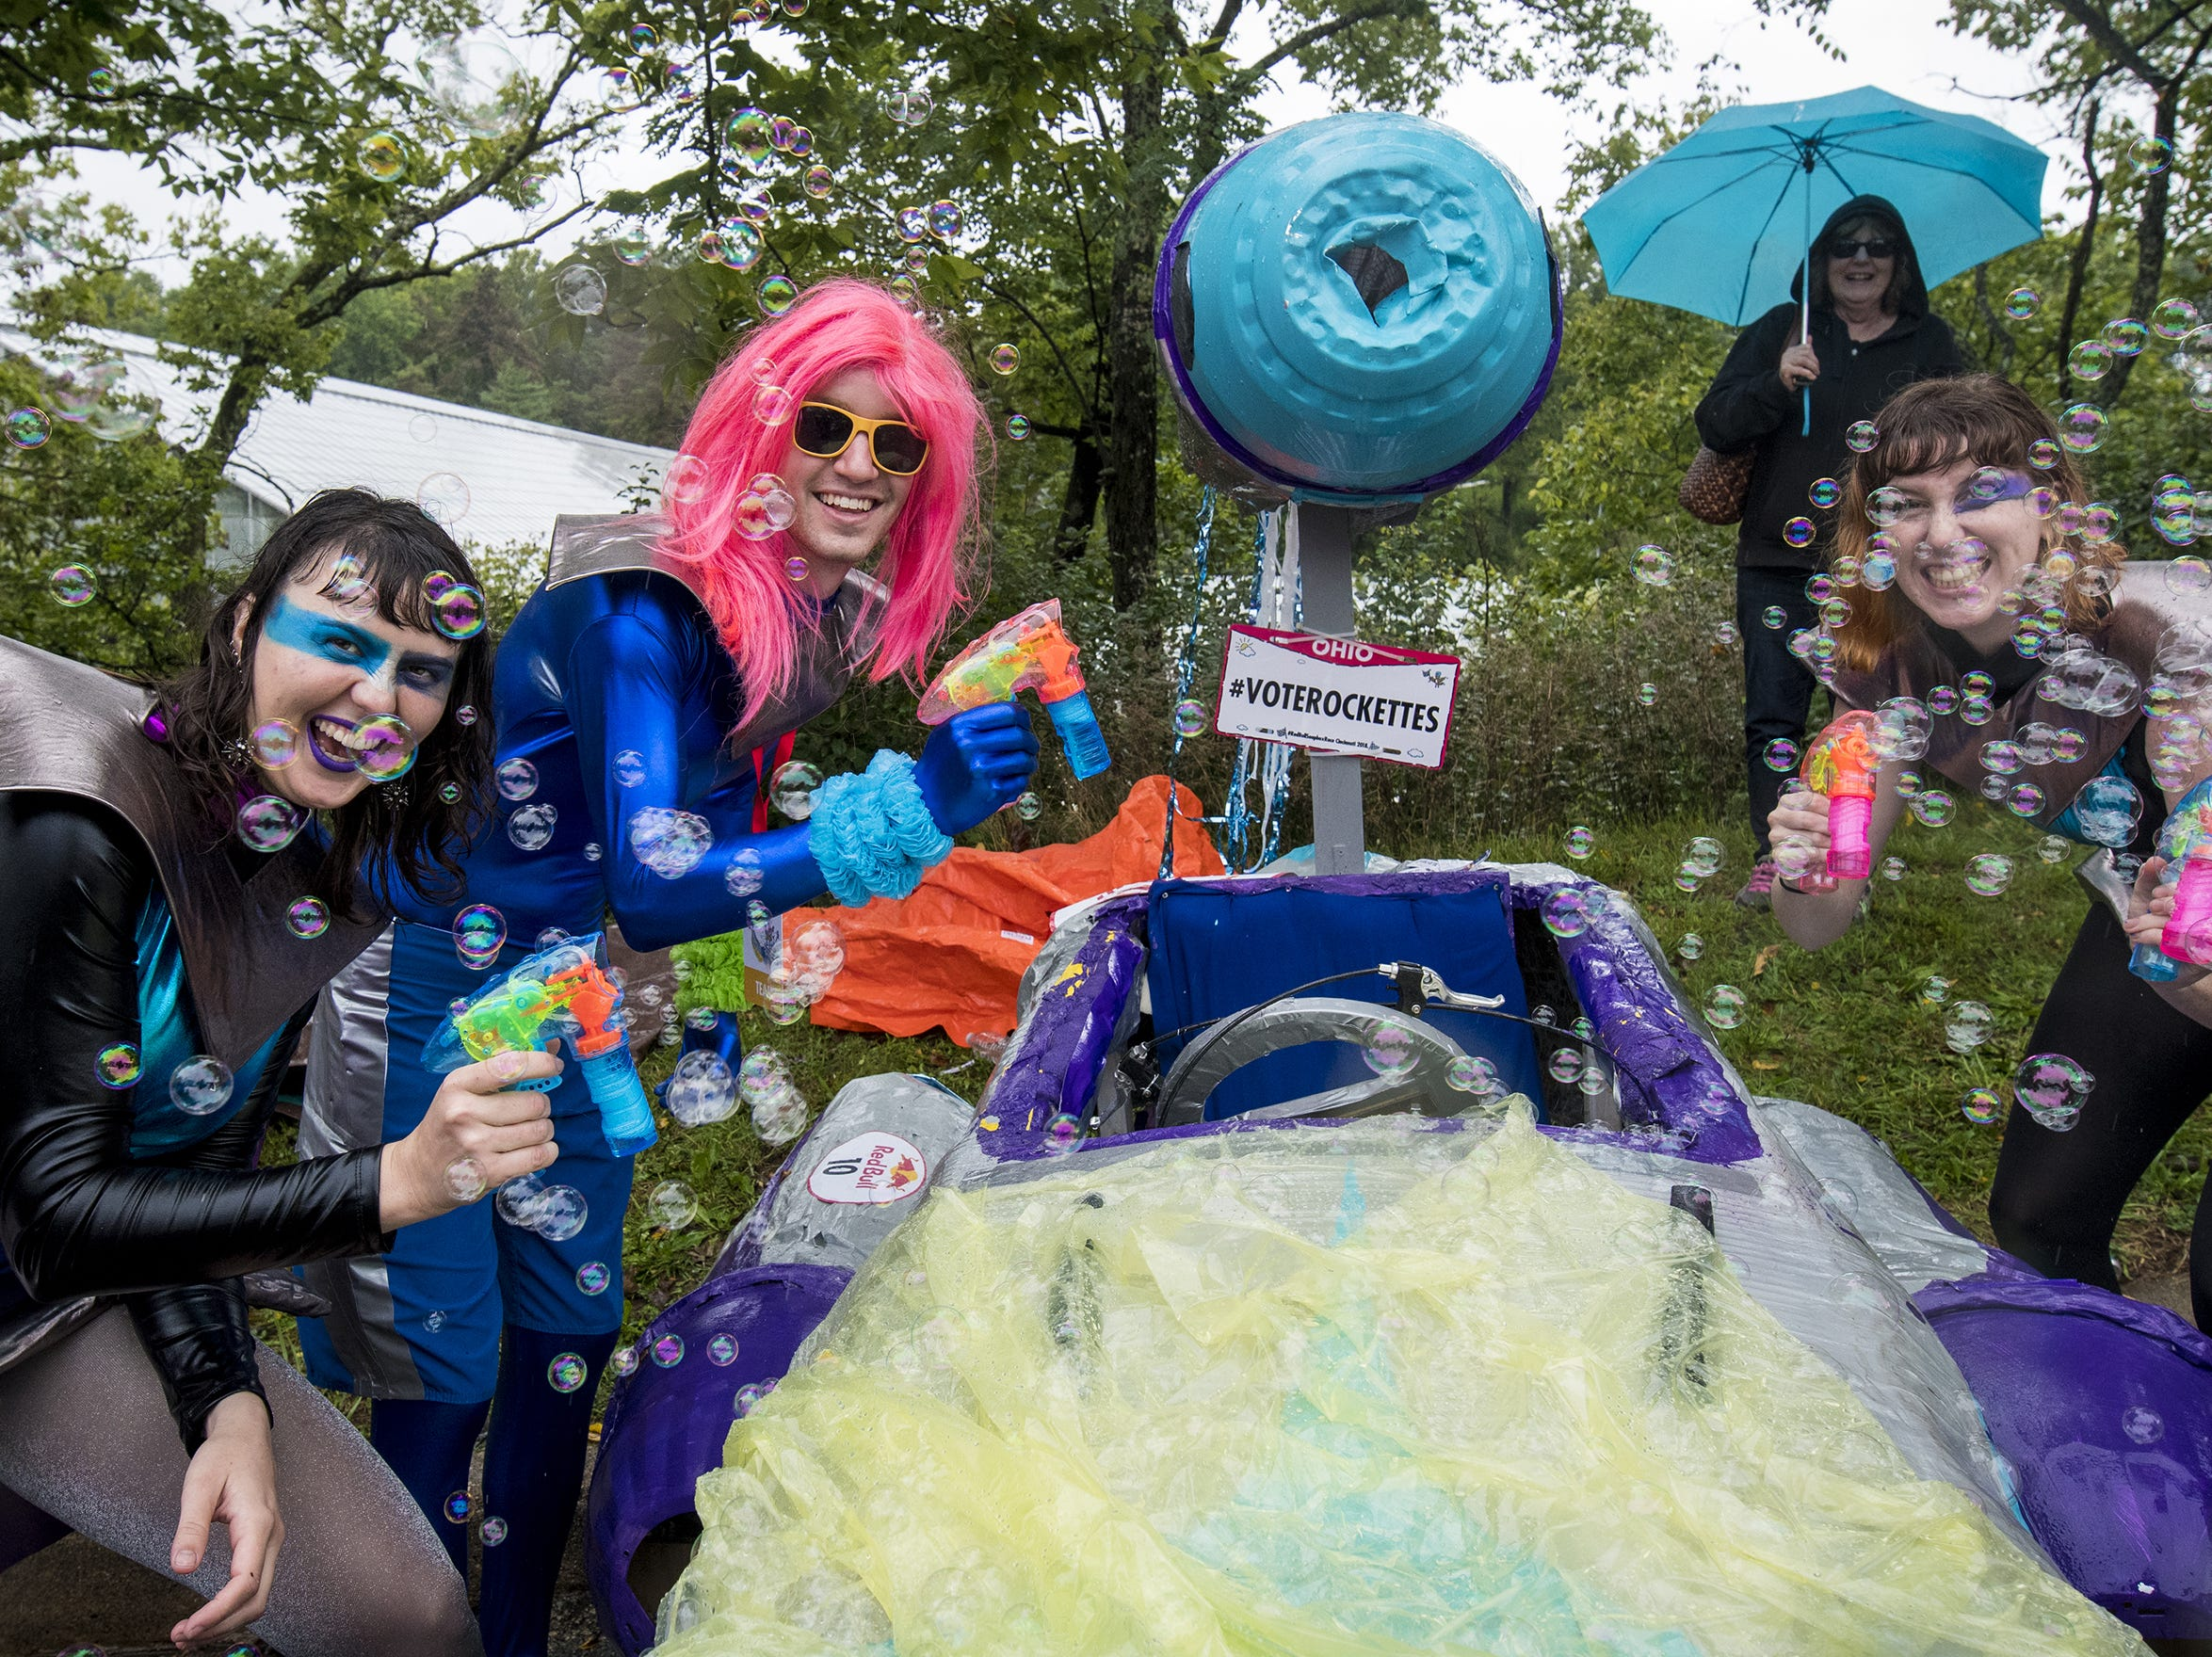 Dana Bennewitz, Collin Mulligan and Denise Funk of the Bangin Rockettes show off their soapbox car before the Red Bull Soapbox Derby Saturday, September 8, 2018 in Cincinnati, Ohio.